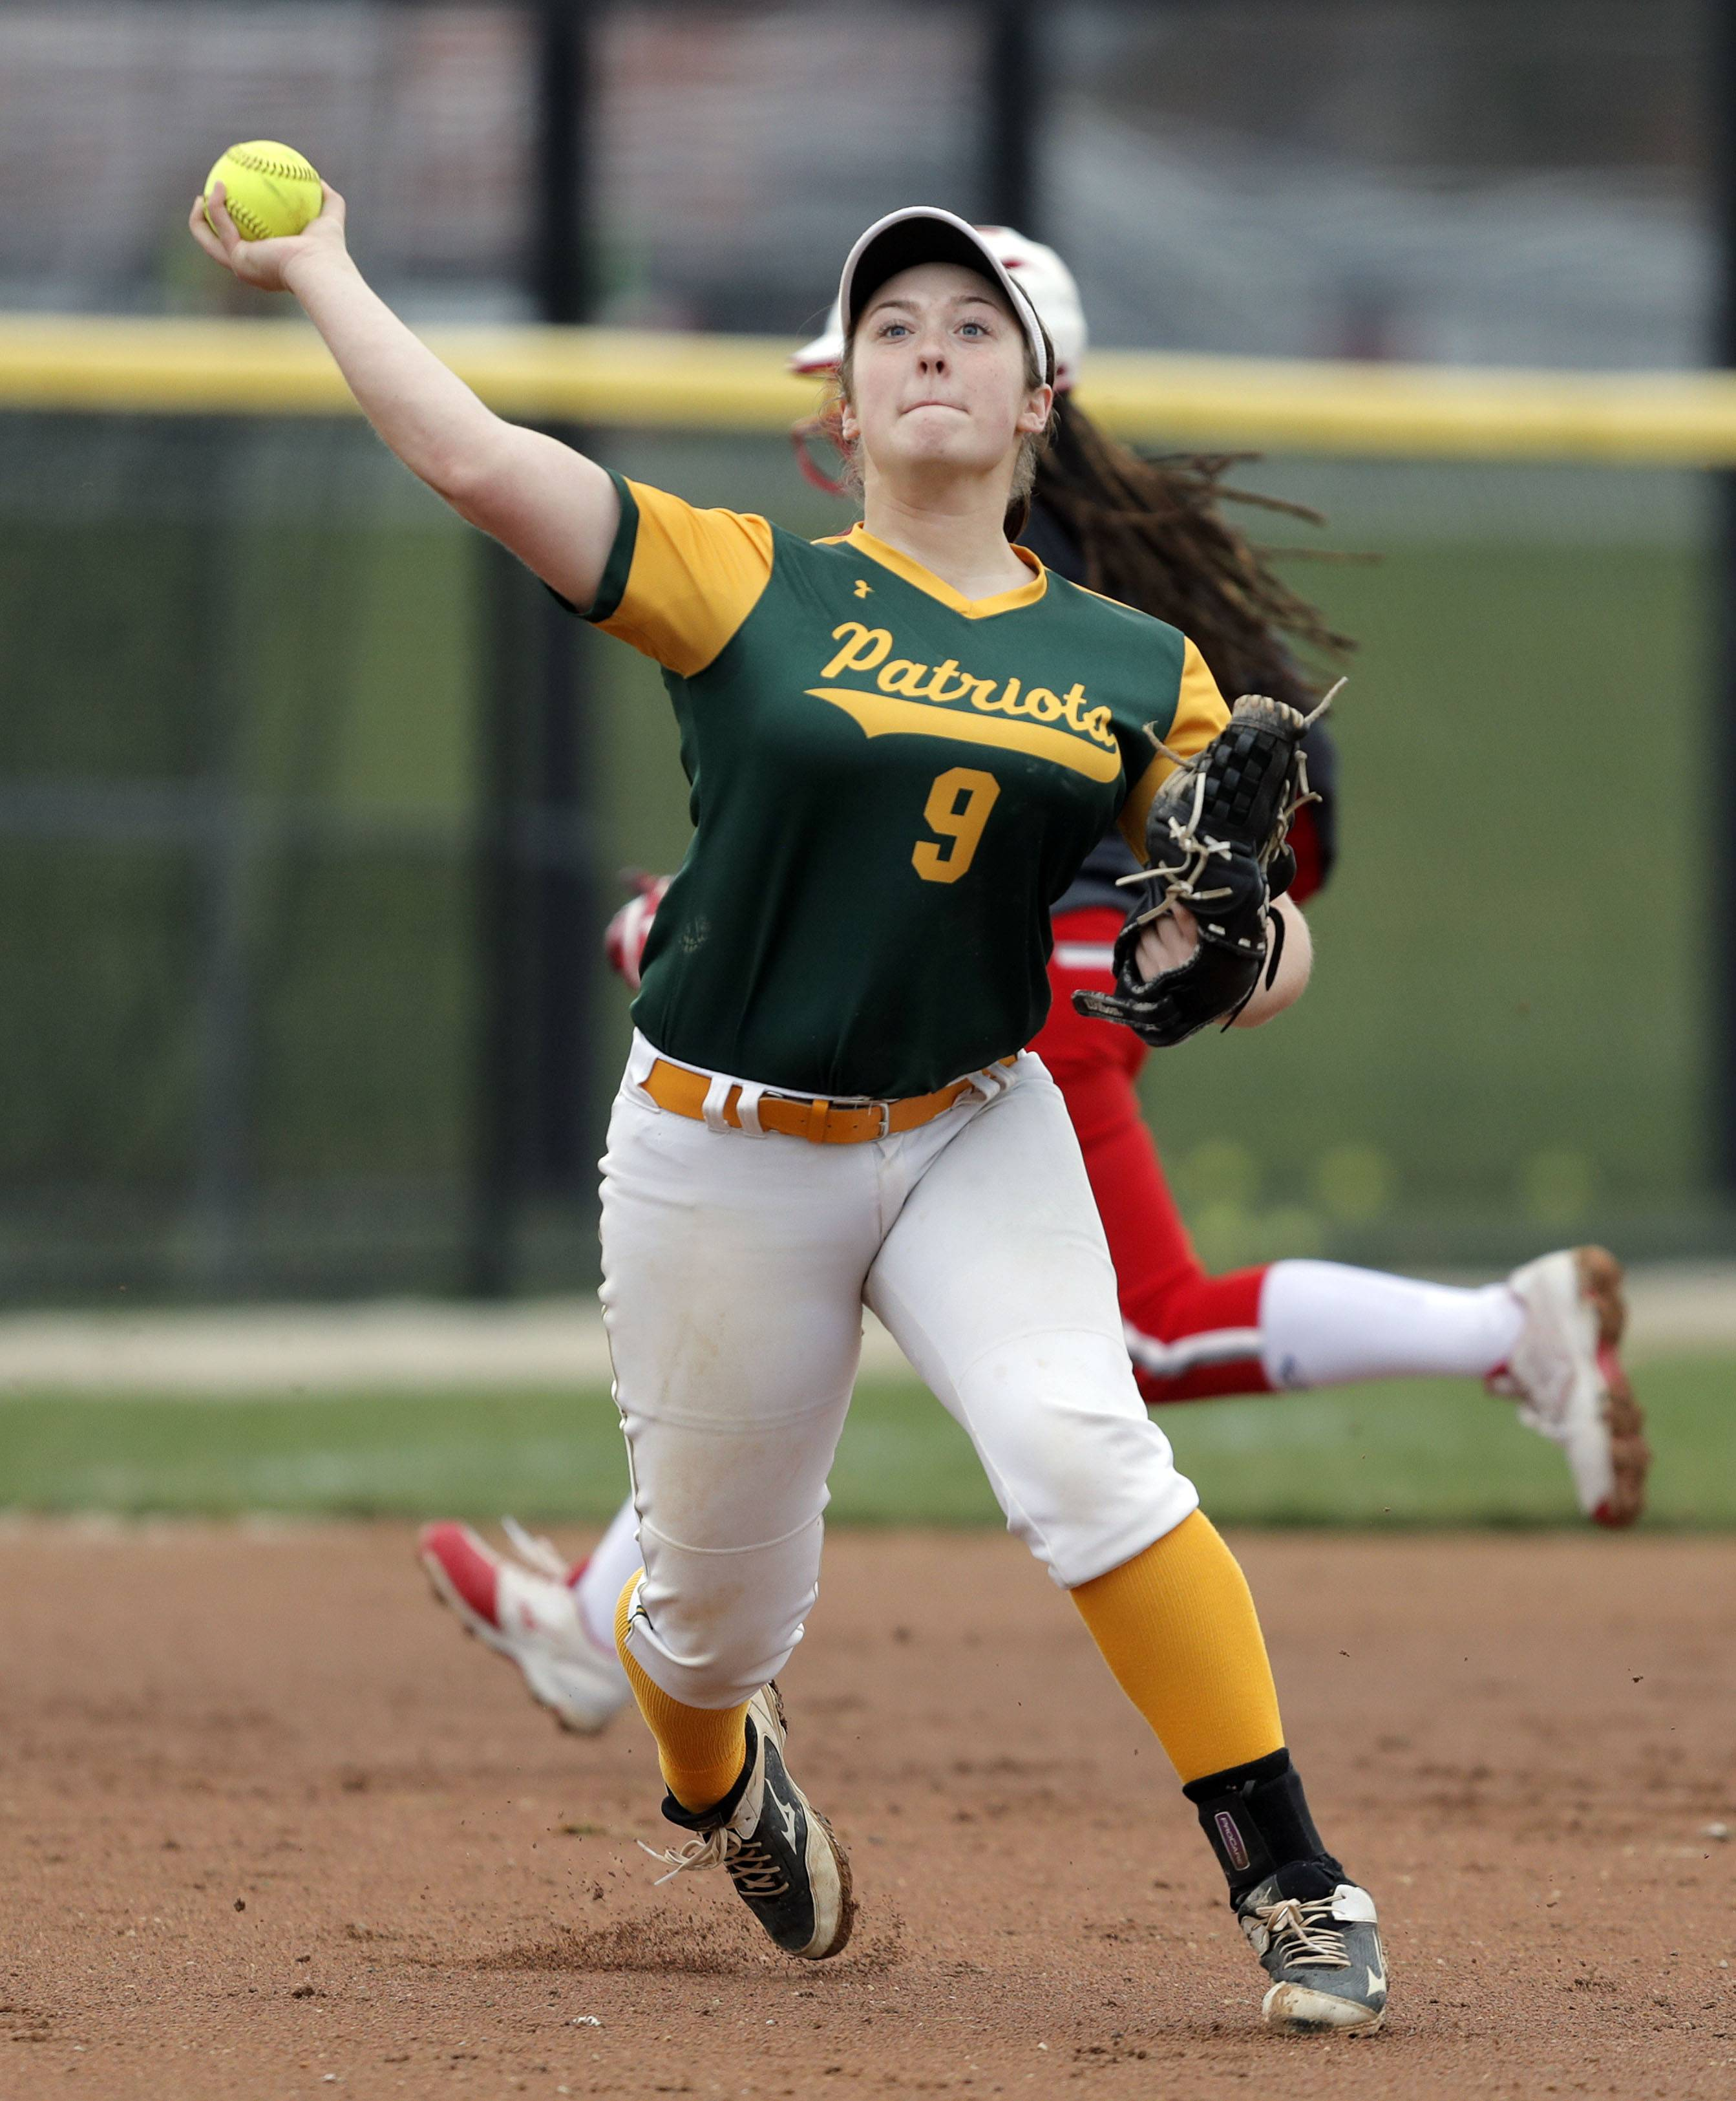 Stevenson's Maggie O'Brien throws to first during their game Wednesday at Grant High School in Fox Lake.